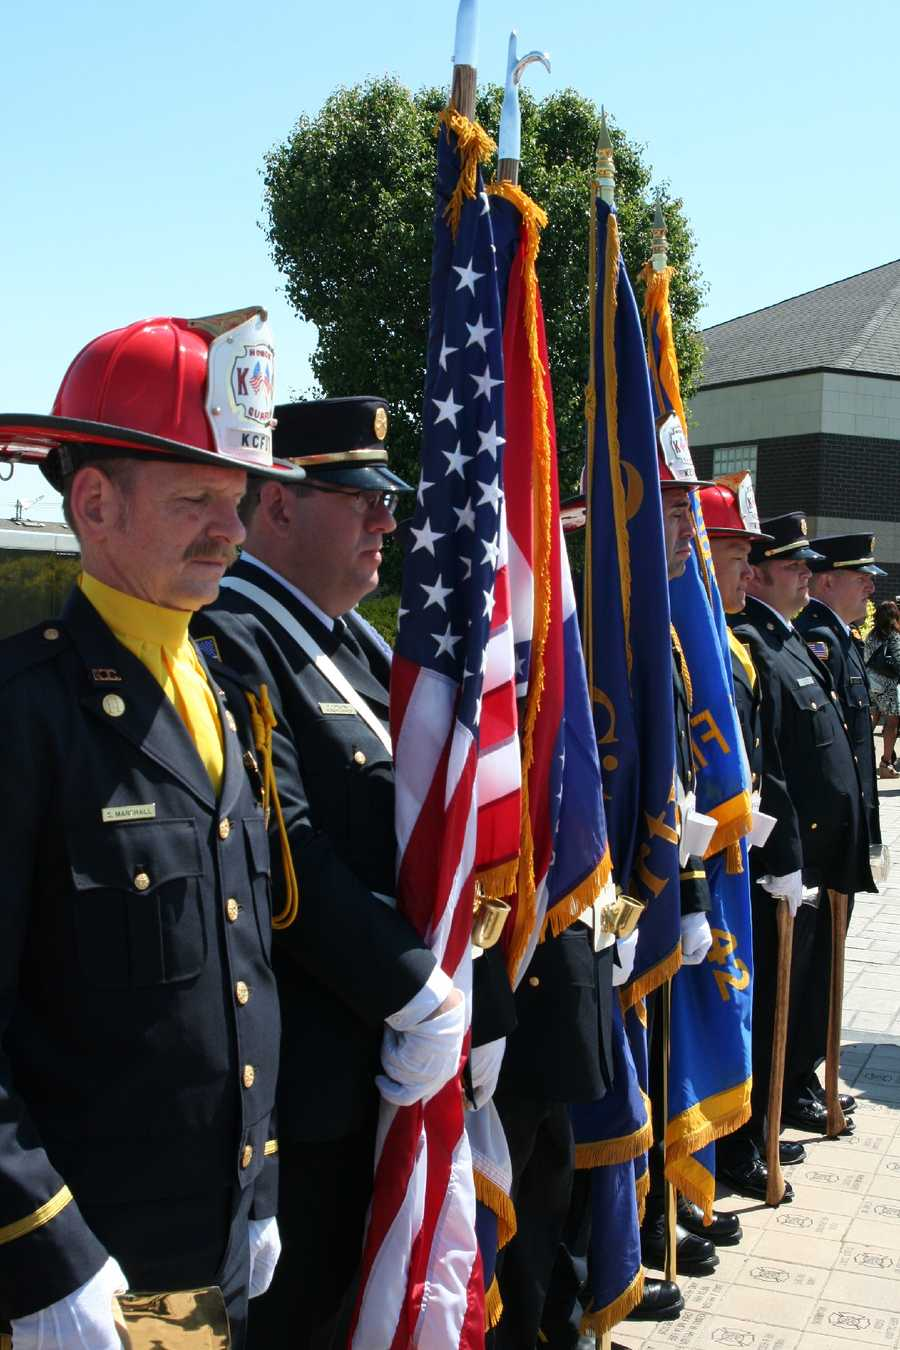 Engineer-Firefighter Larry W. Lawhorn of the Orchard Farm Fire Protection District was responding to a mutual aid structure fire when the fire department tanker he was driving left the roadway and came to rest in a field after he suffered a heart attack.